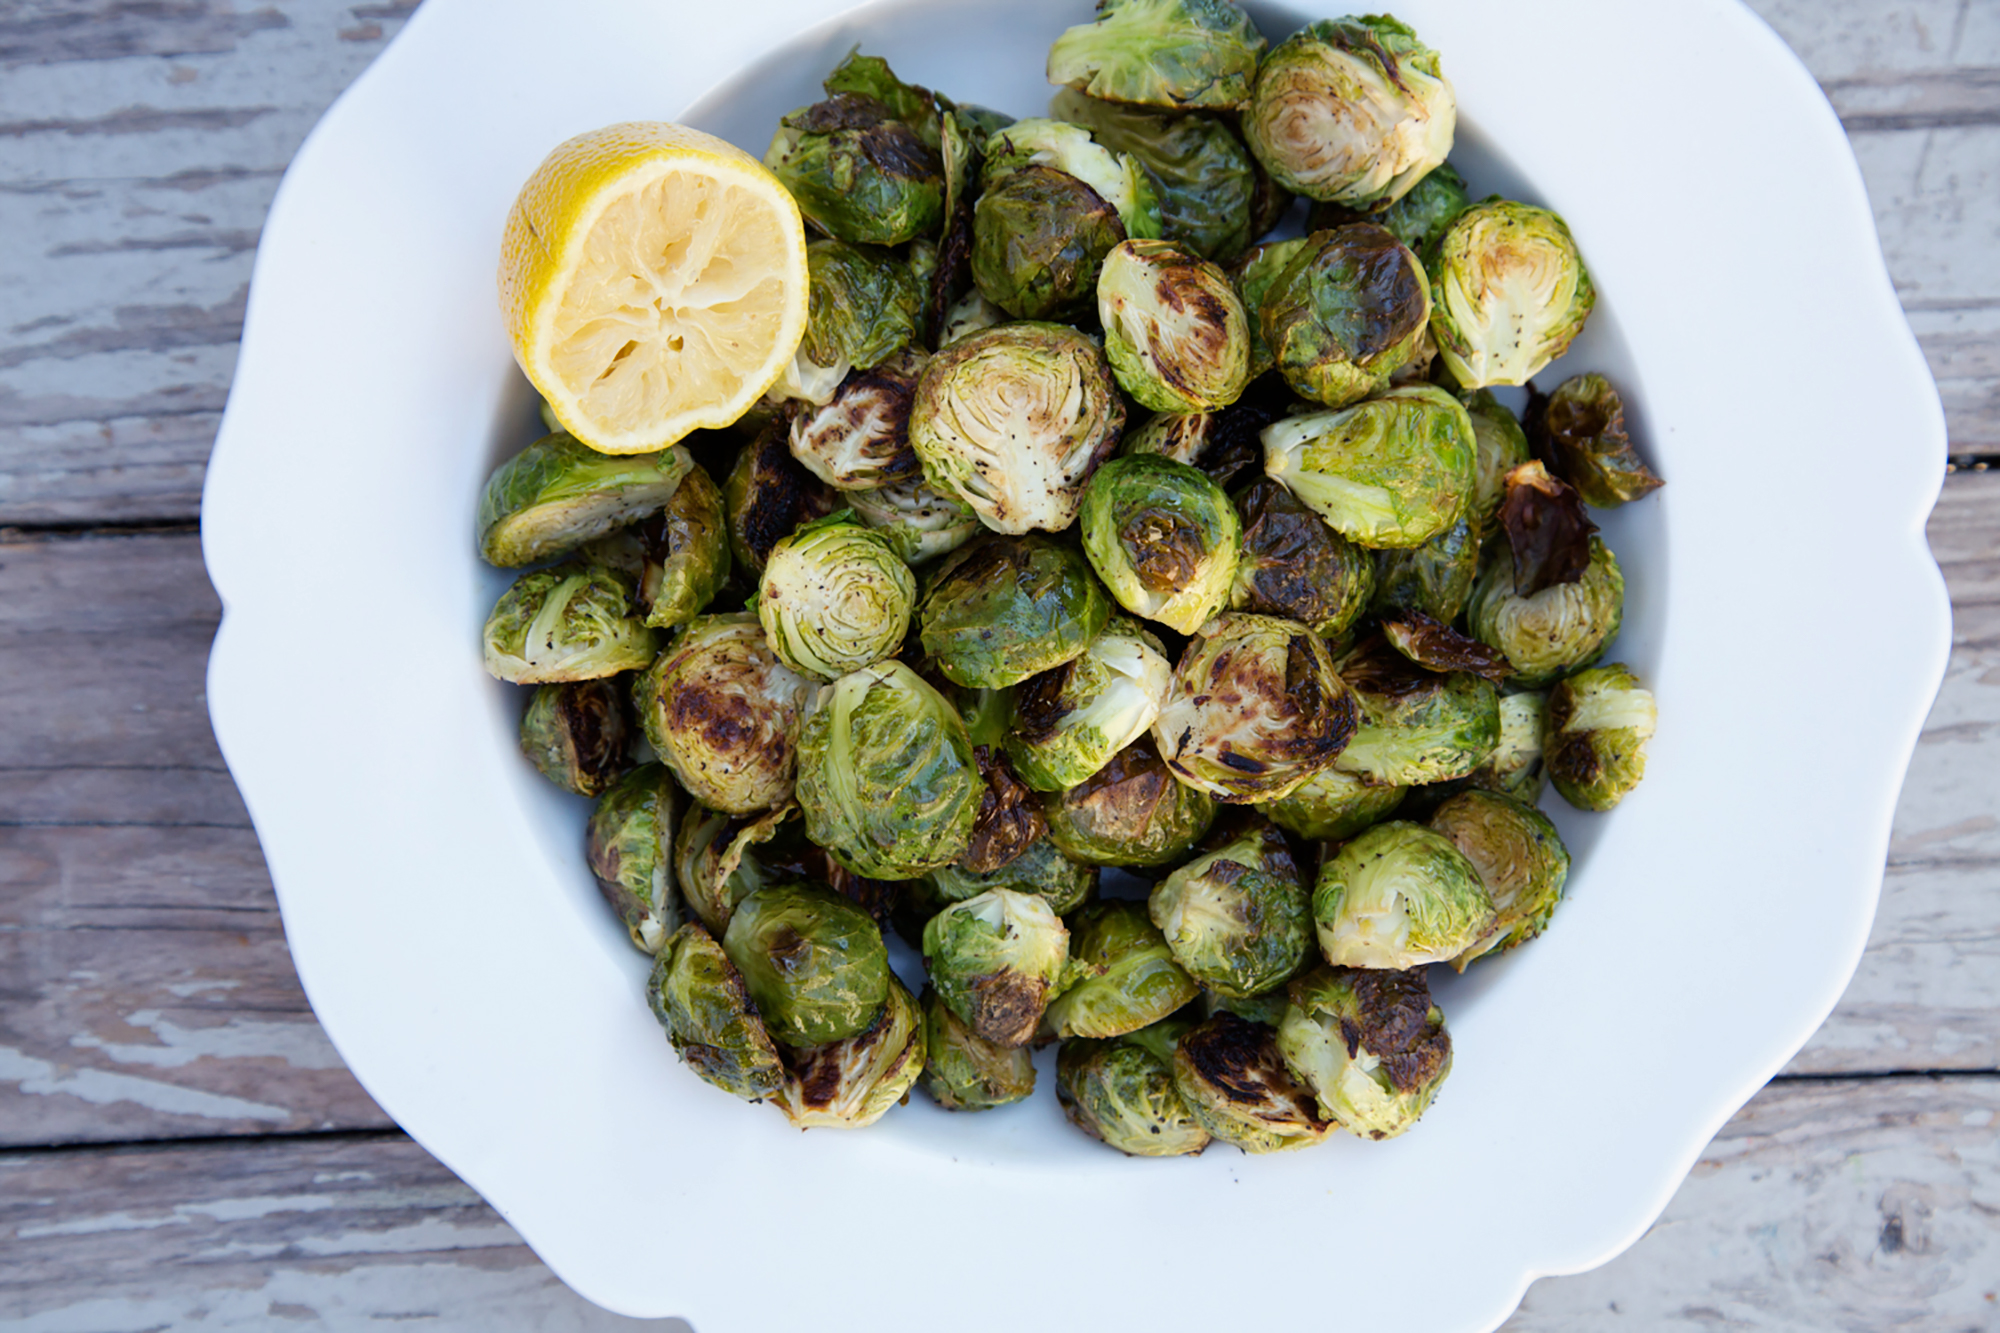 jo-torrijos-states-of-reverie-simple-brussels-sprouts-recipe-2.jpg